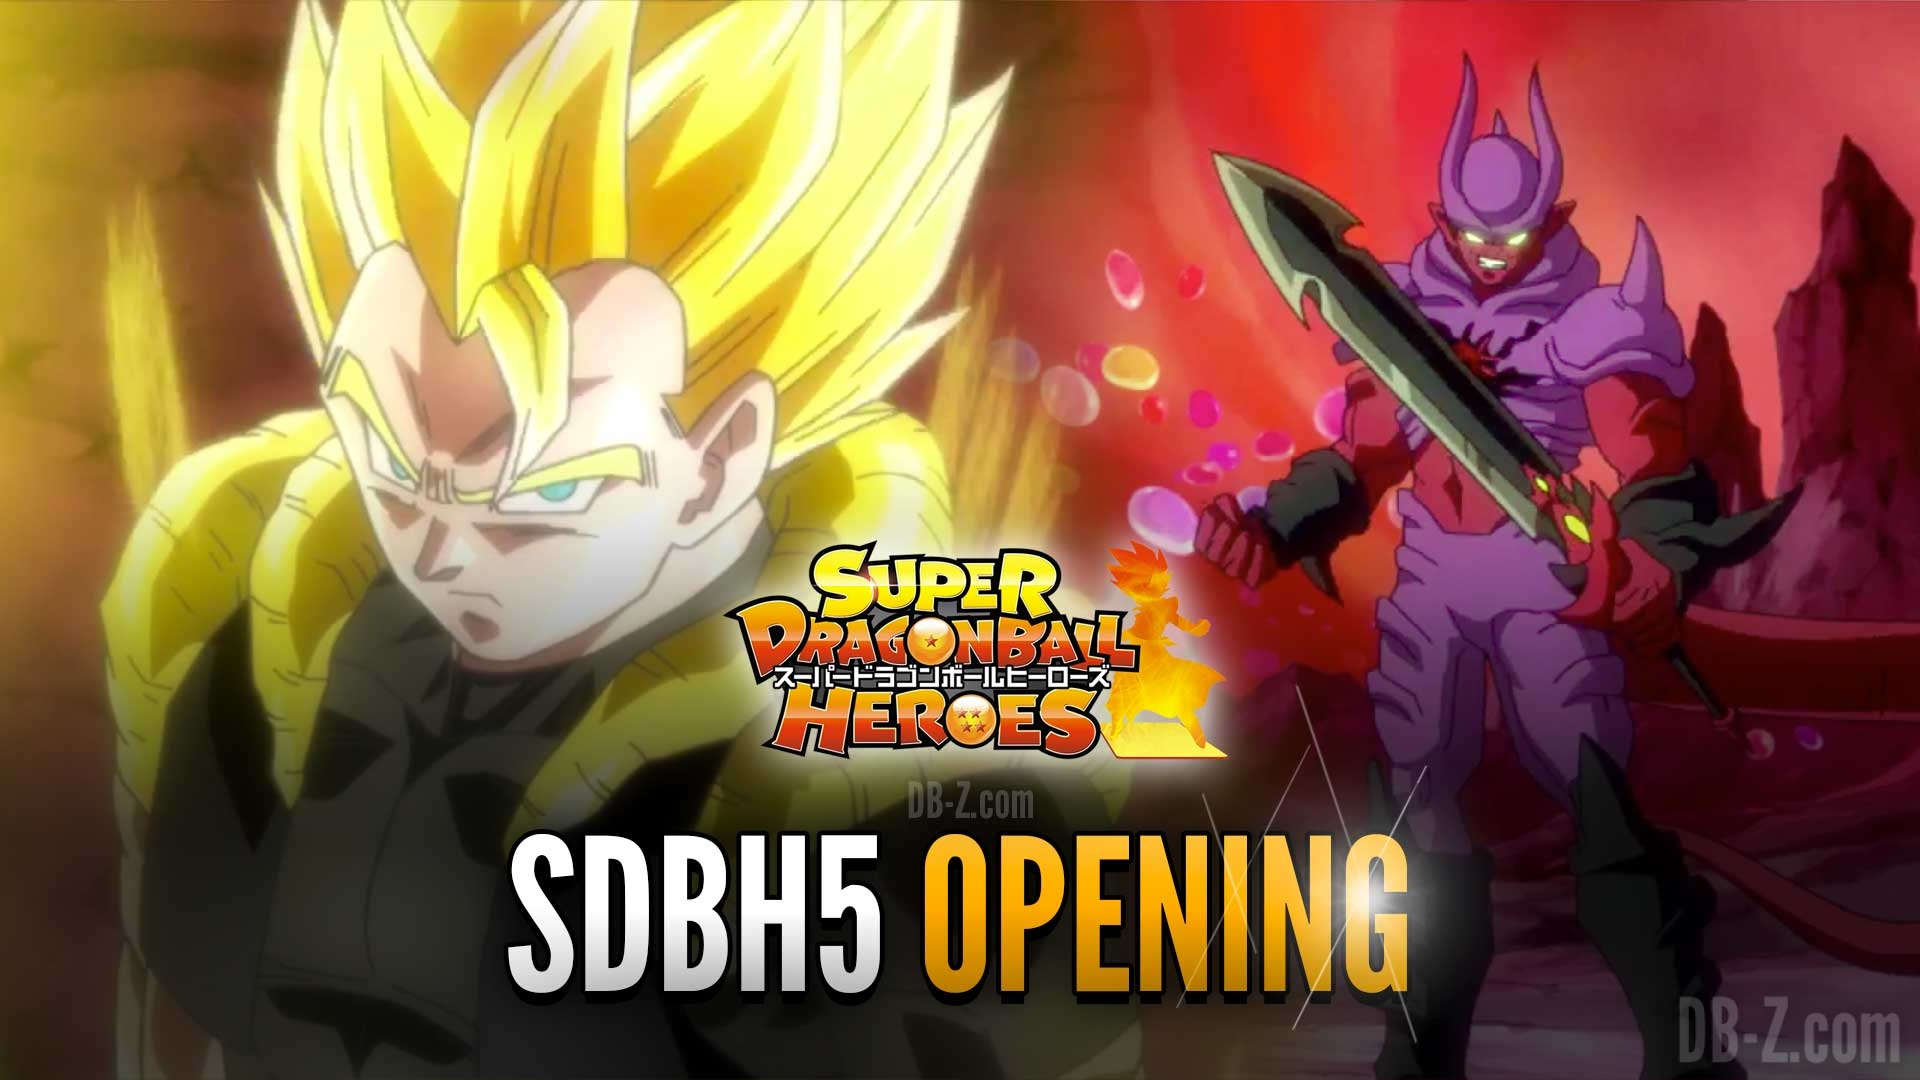 Dragon ball heroes opening 1 - 1 1